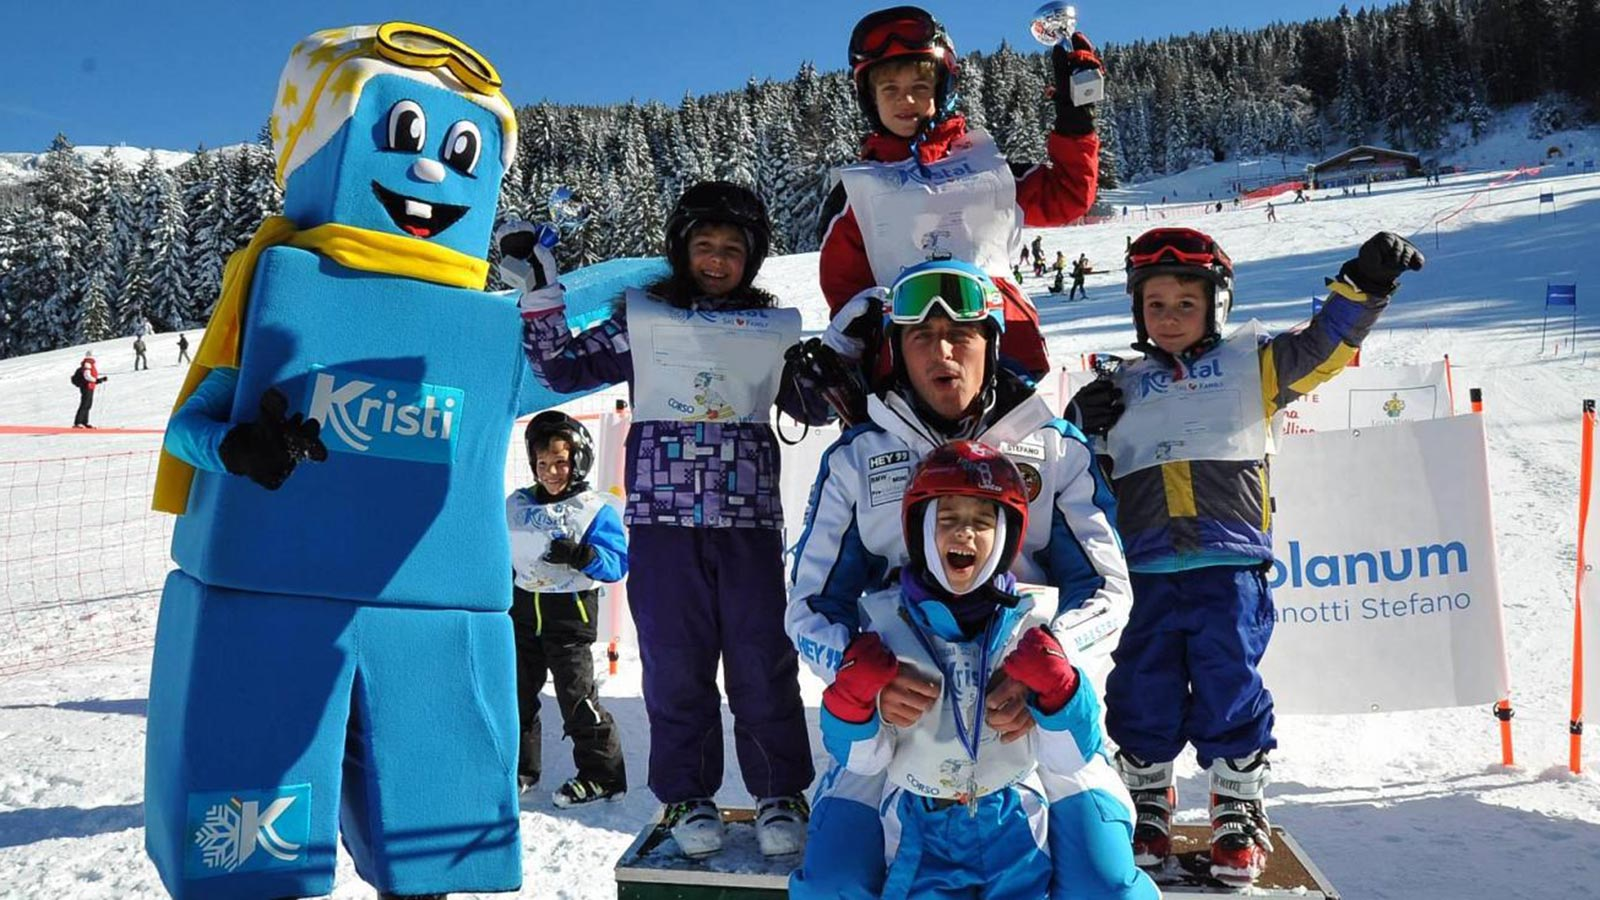 The ski school with Mascot Kristi near the Residence Antares in Andalo